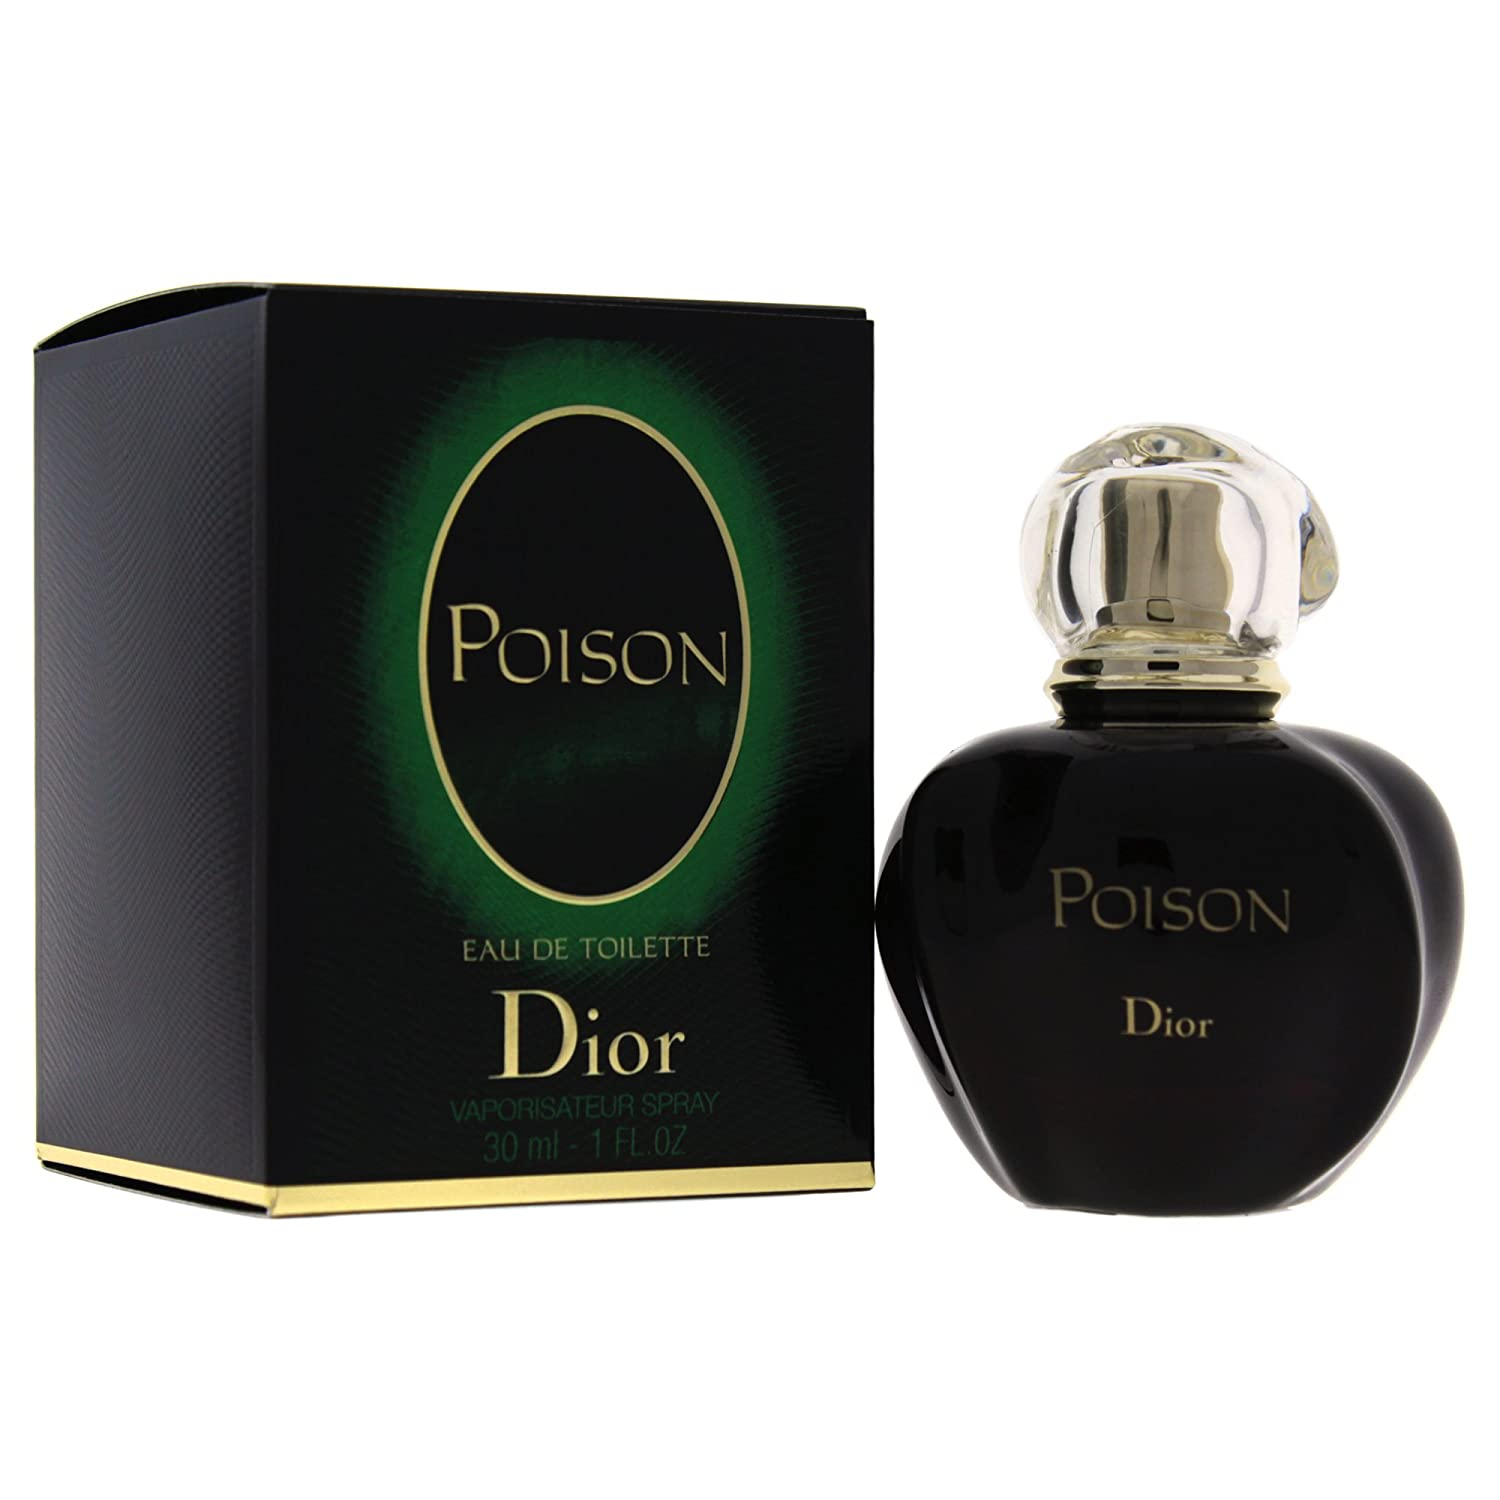 da86b1f231e Christian Dior Poison Eau de Toilette Vaporisateur Spray for Women 30 ml   Amazon.co.uk  Beauty